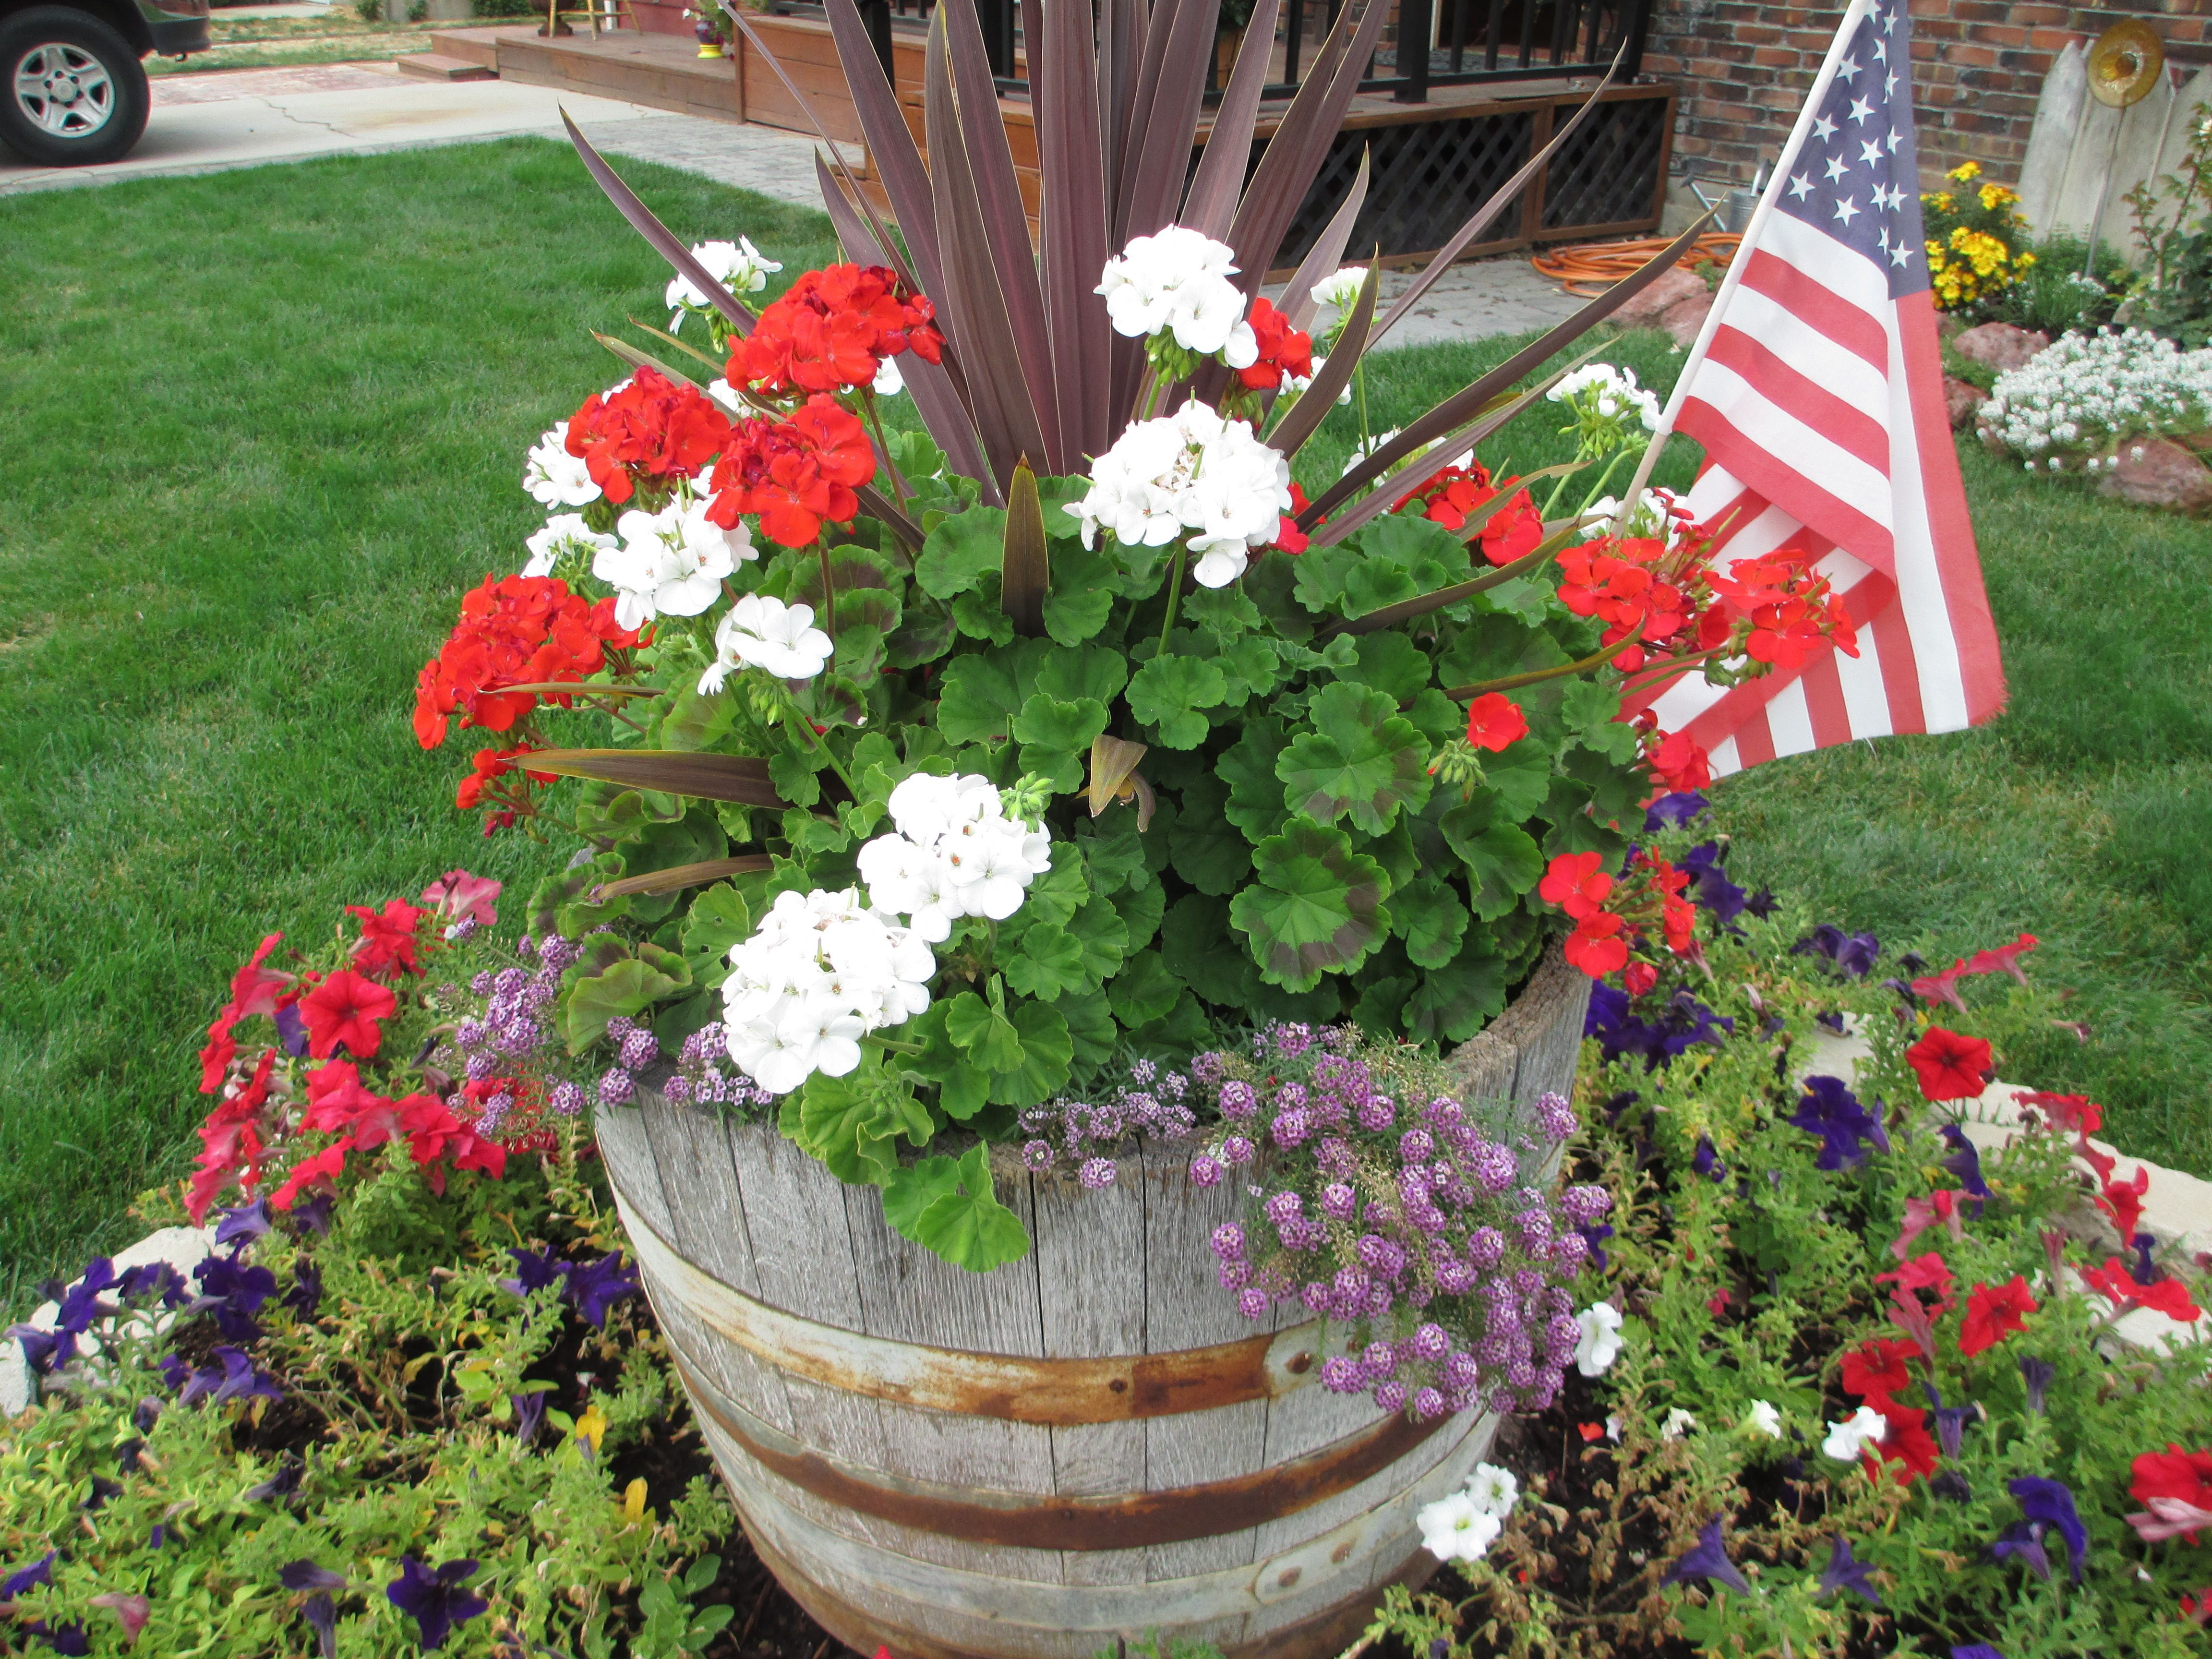 Such a perky pot of flowers covering the tree stump in our front